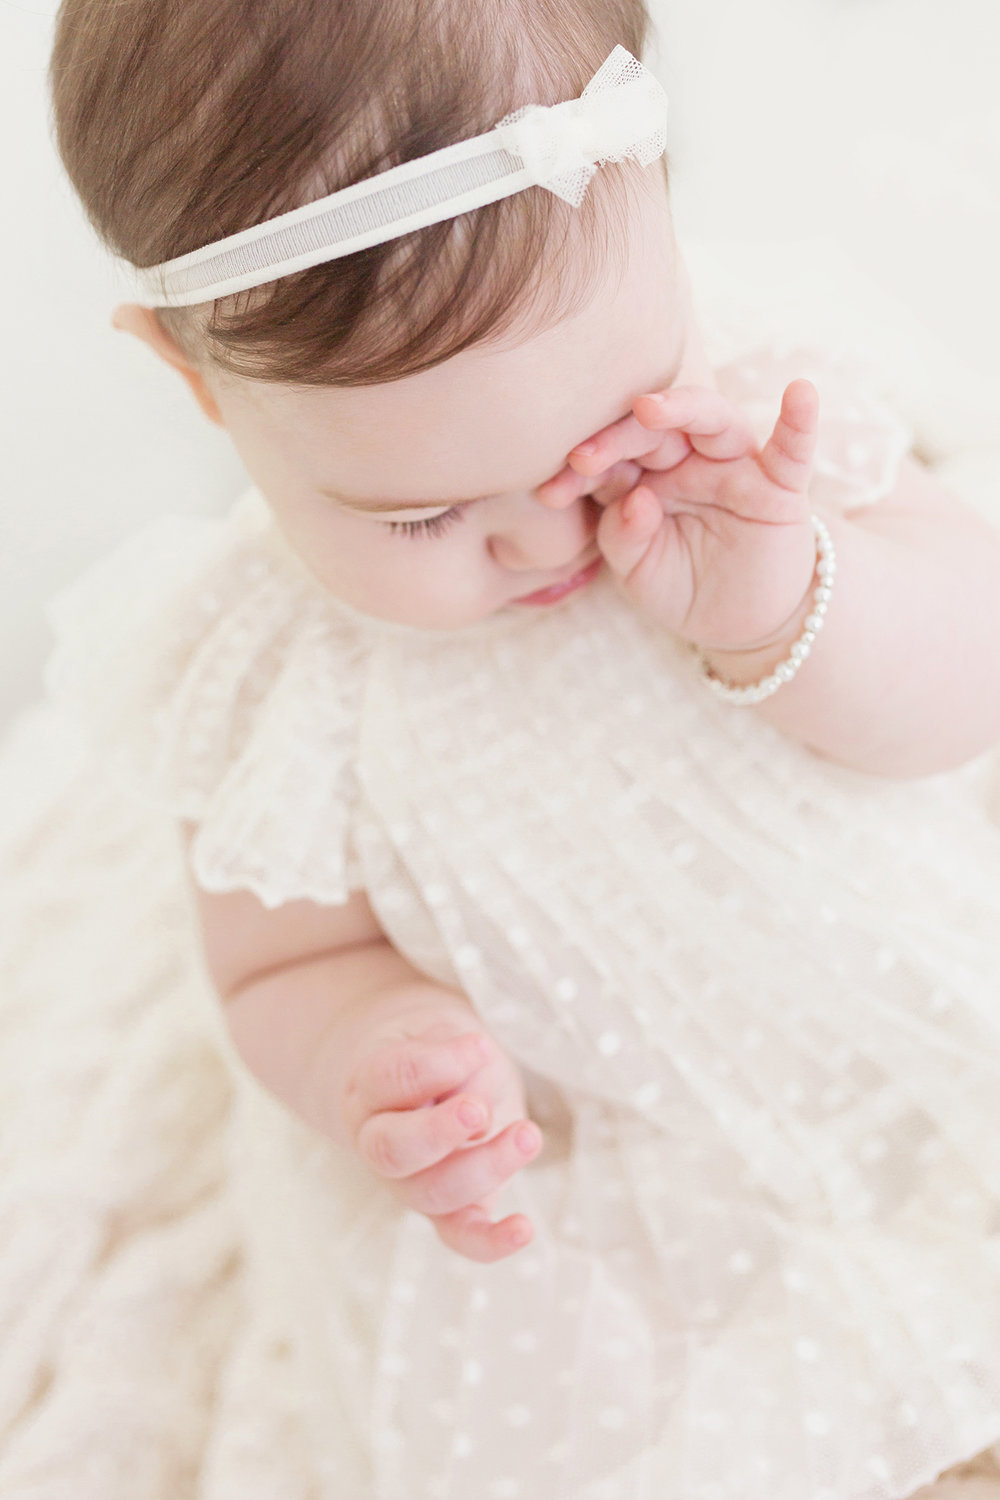 oklahoma-city-baby-child-photography.jpg